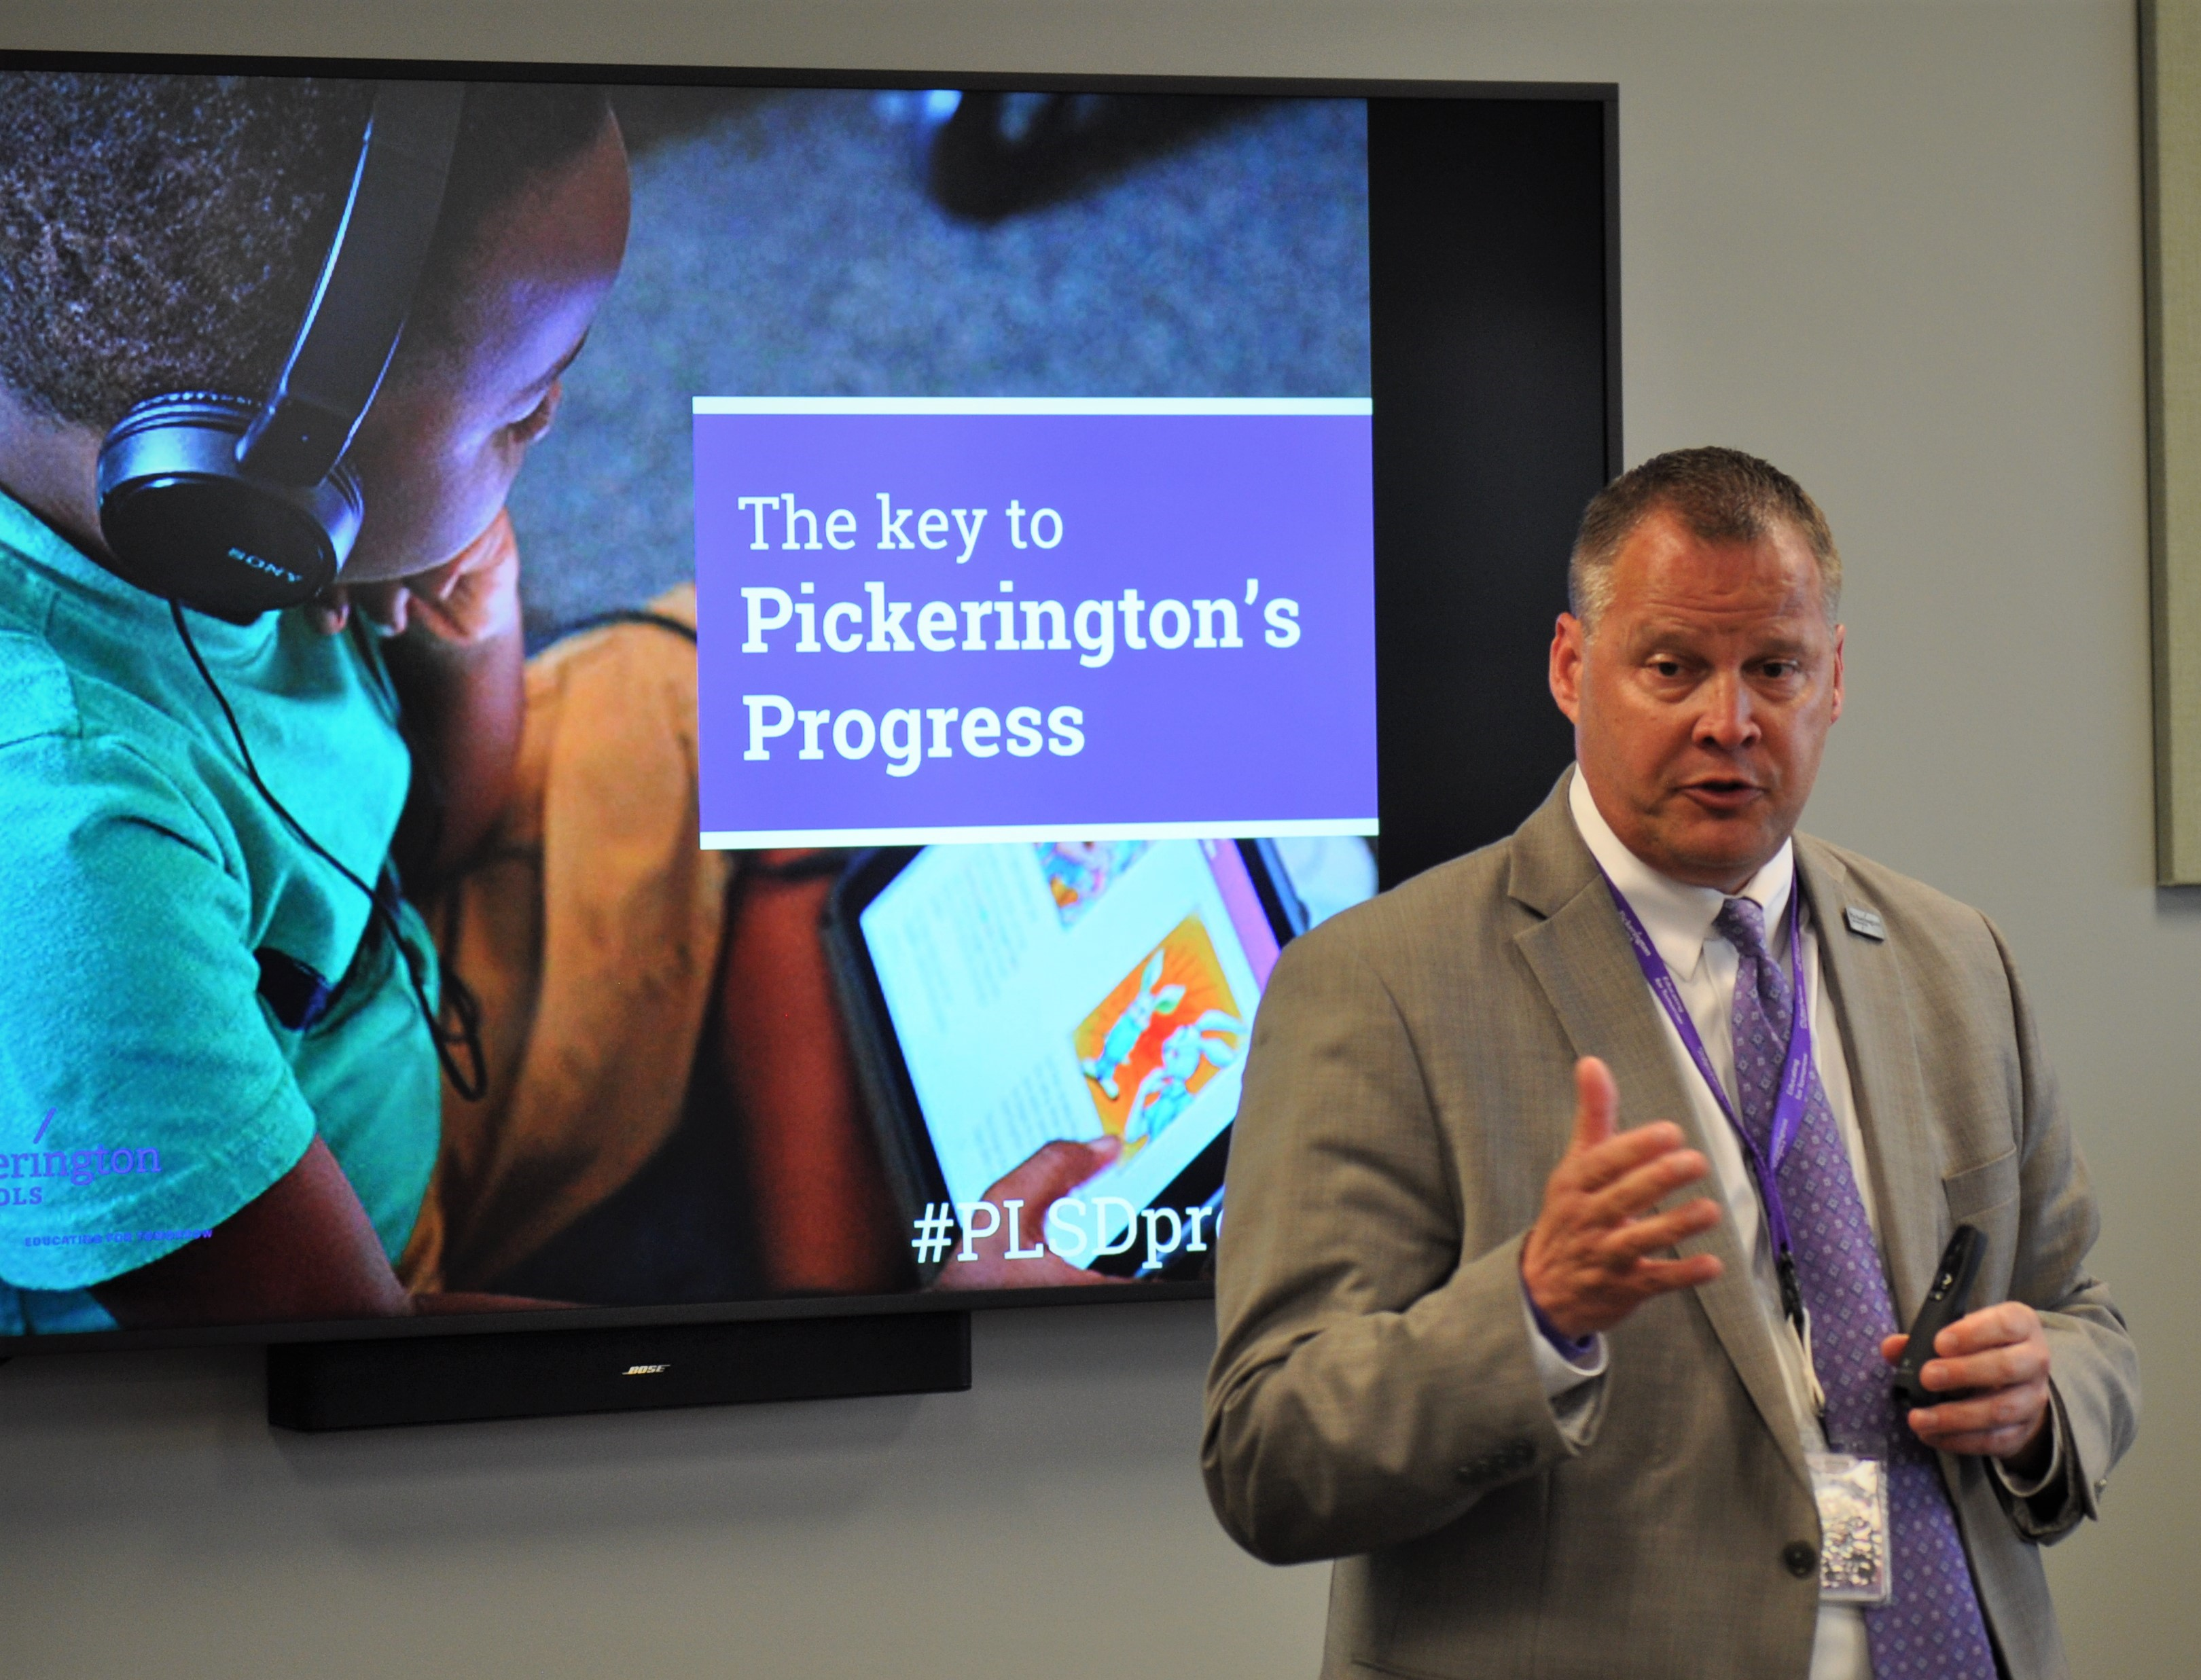 Dr. Briggs presents the Plan for Progress vision